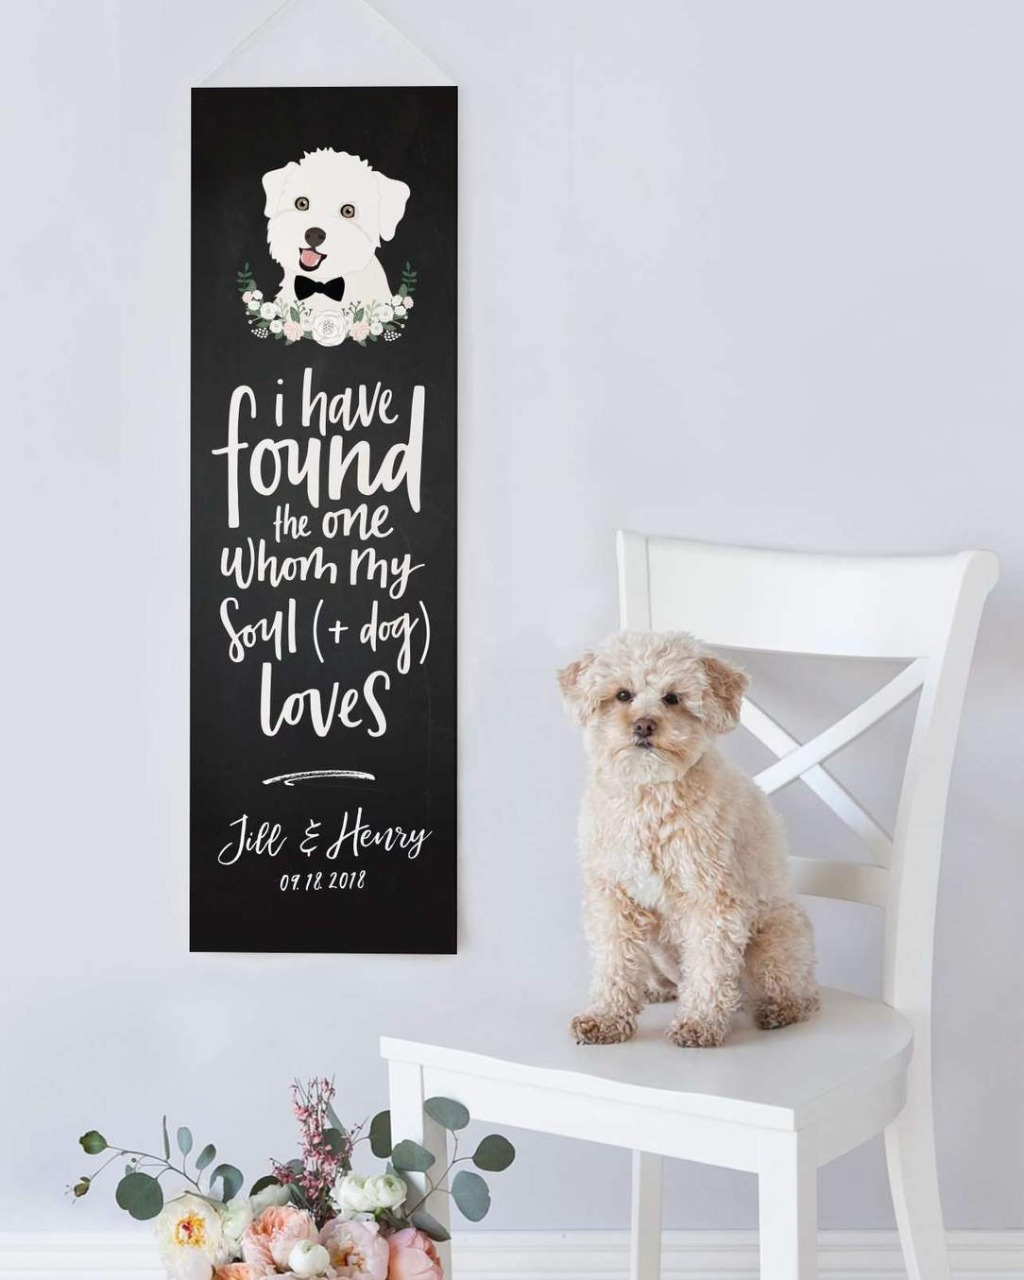 At Miss Design Berry, we have the perfect wedding decor!! This Chalkboard Wedding Banner with Pet Portrait features your pet and a